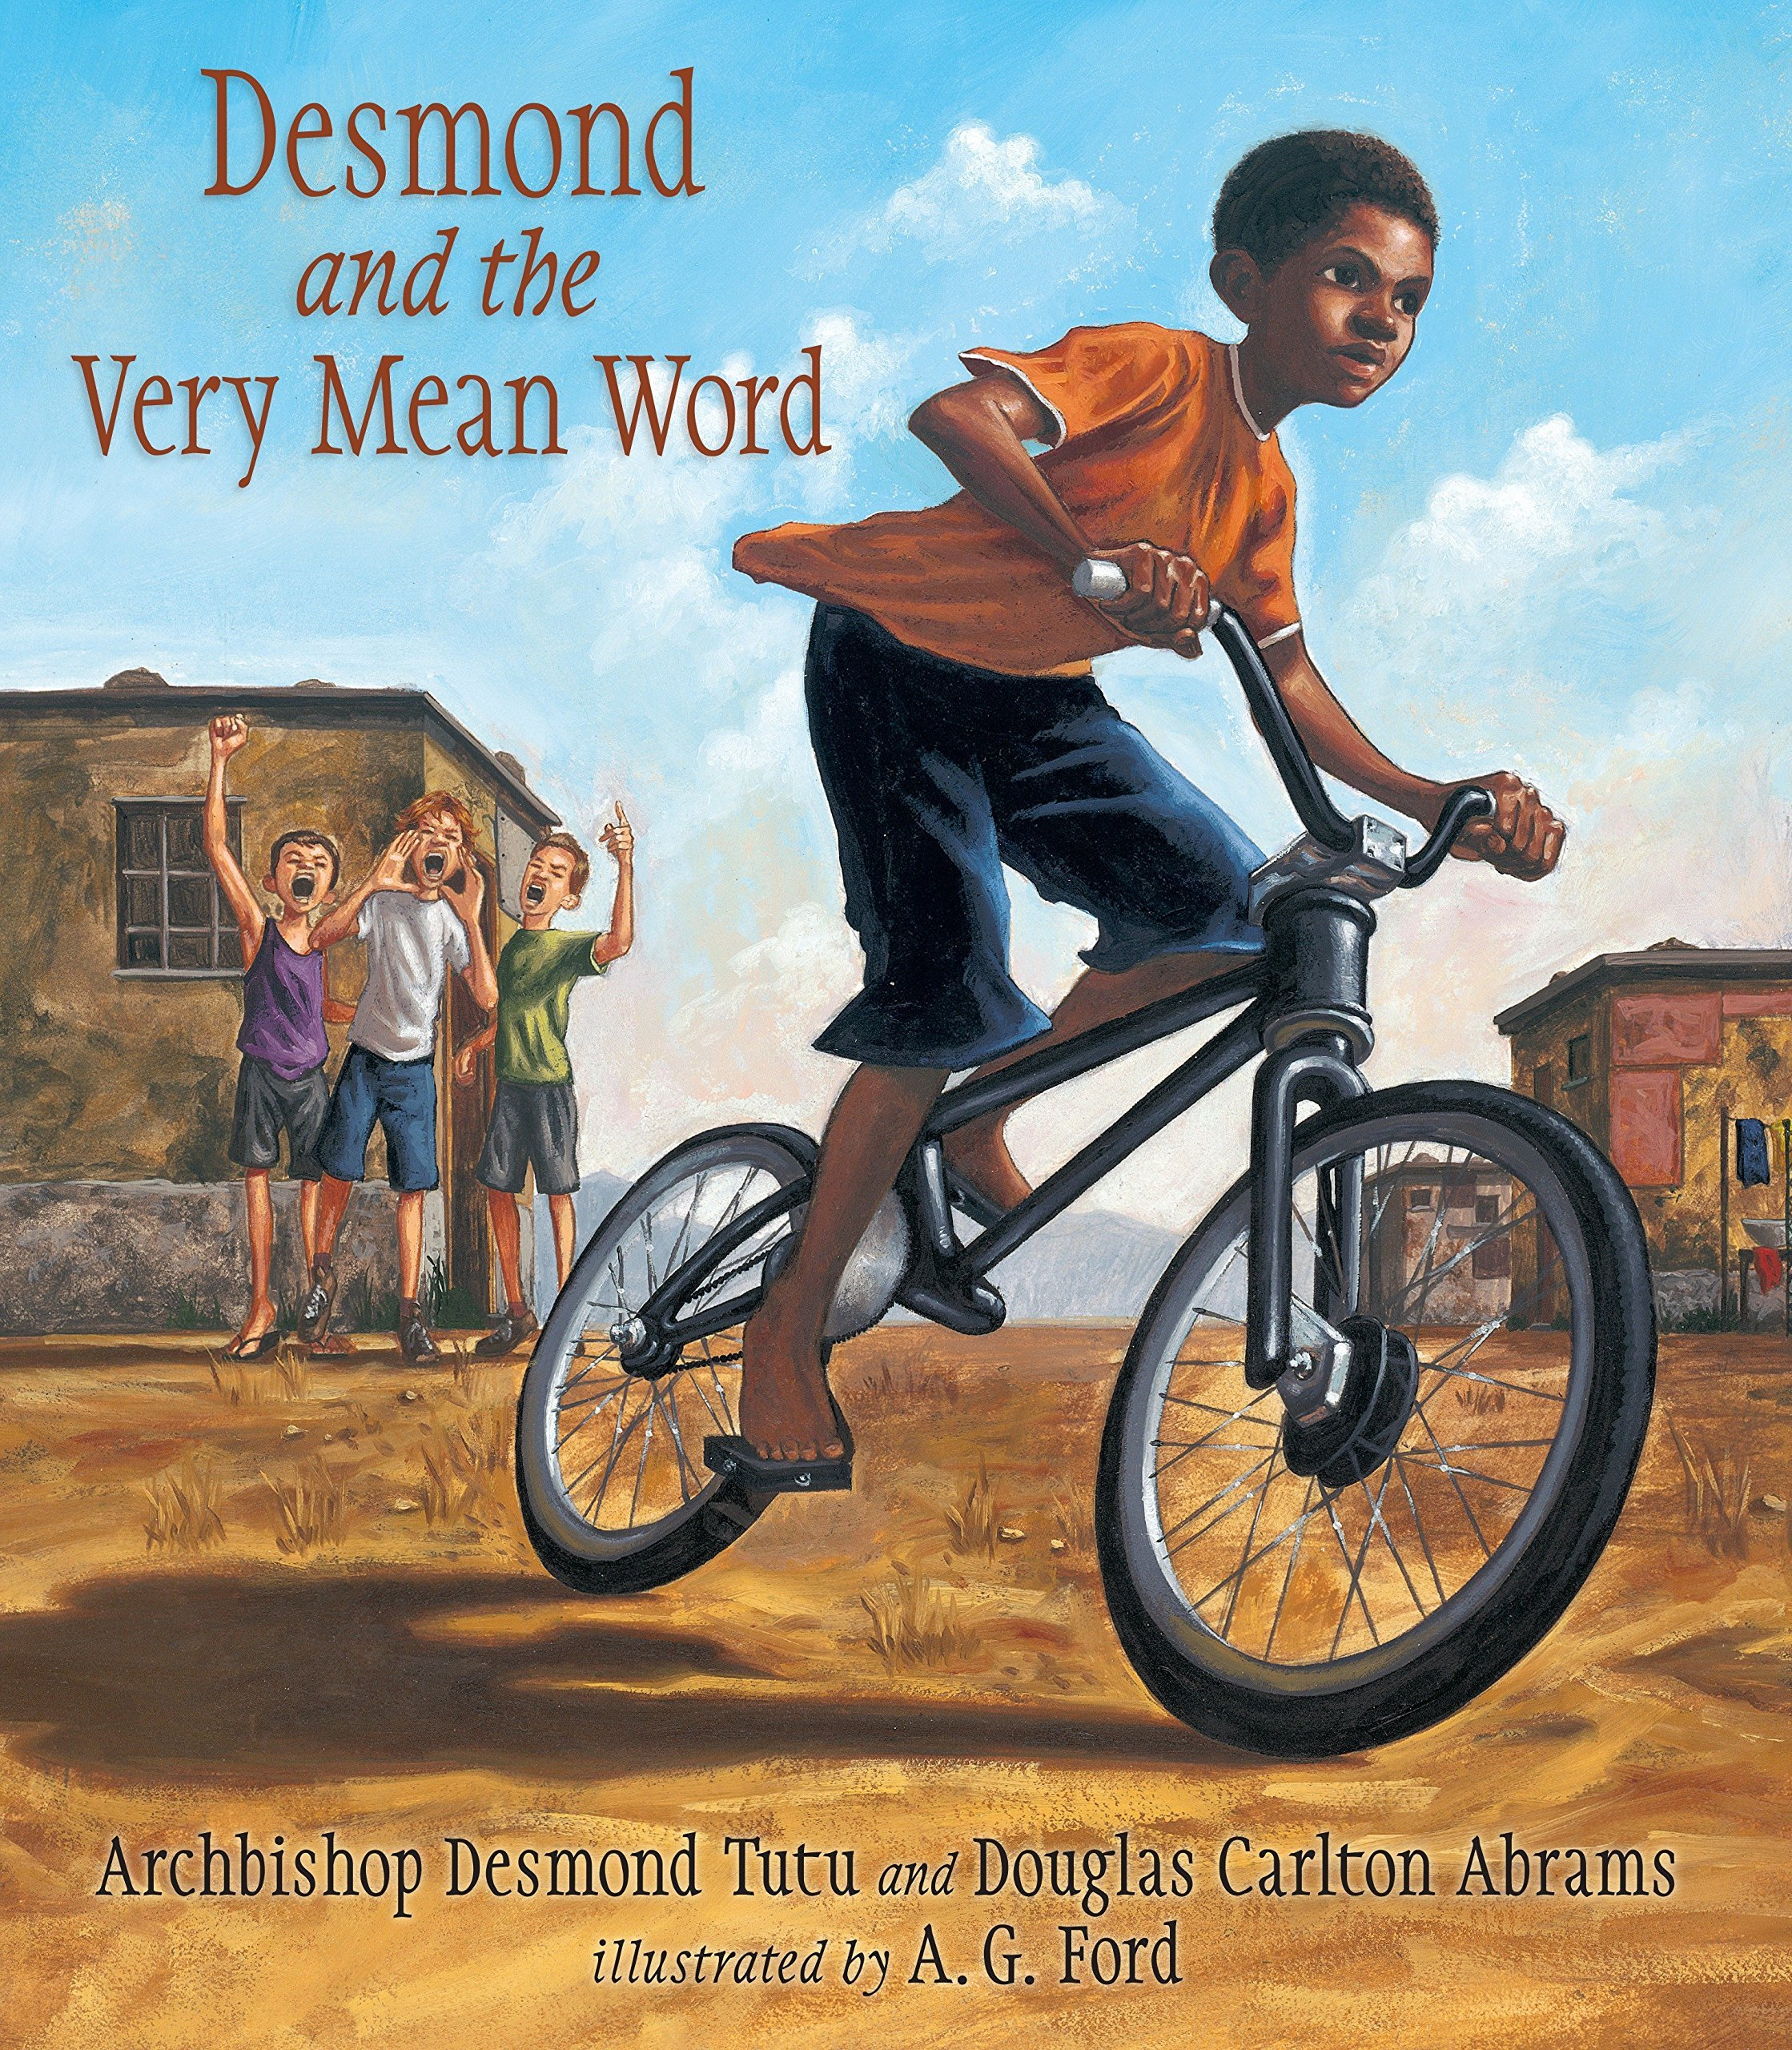 Desmond and the Very Mean Word book cover